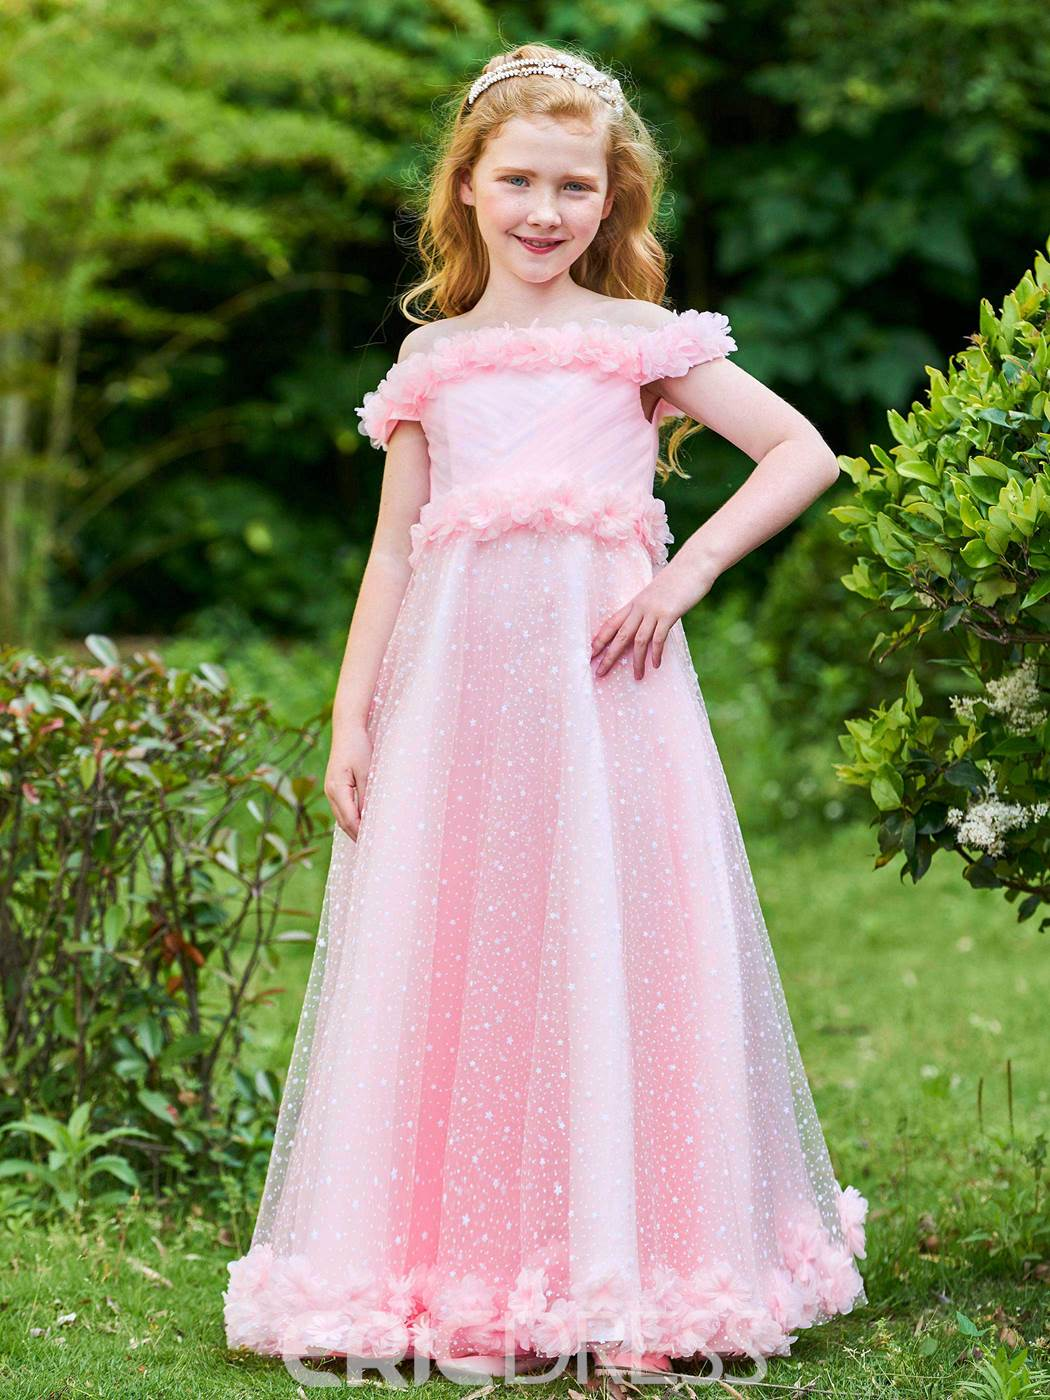 Ericdress Off The Shoulder Flowers A Line Tulle Flower Girl Party Dress